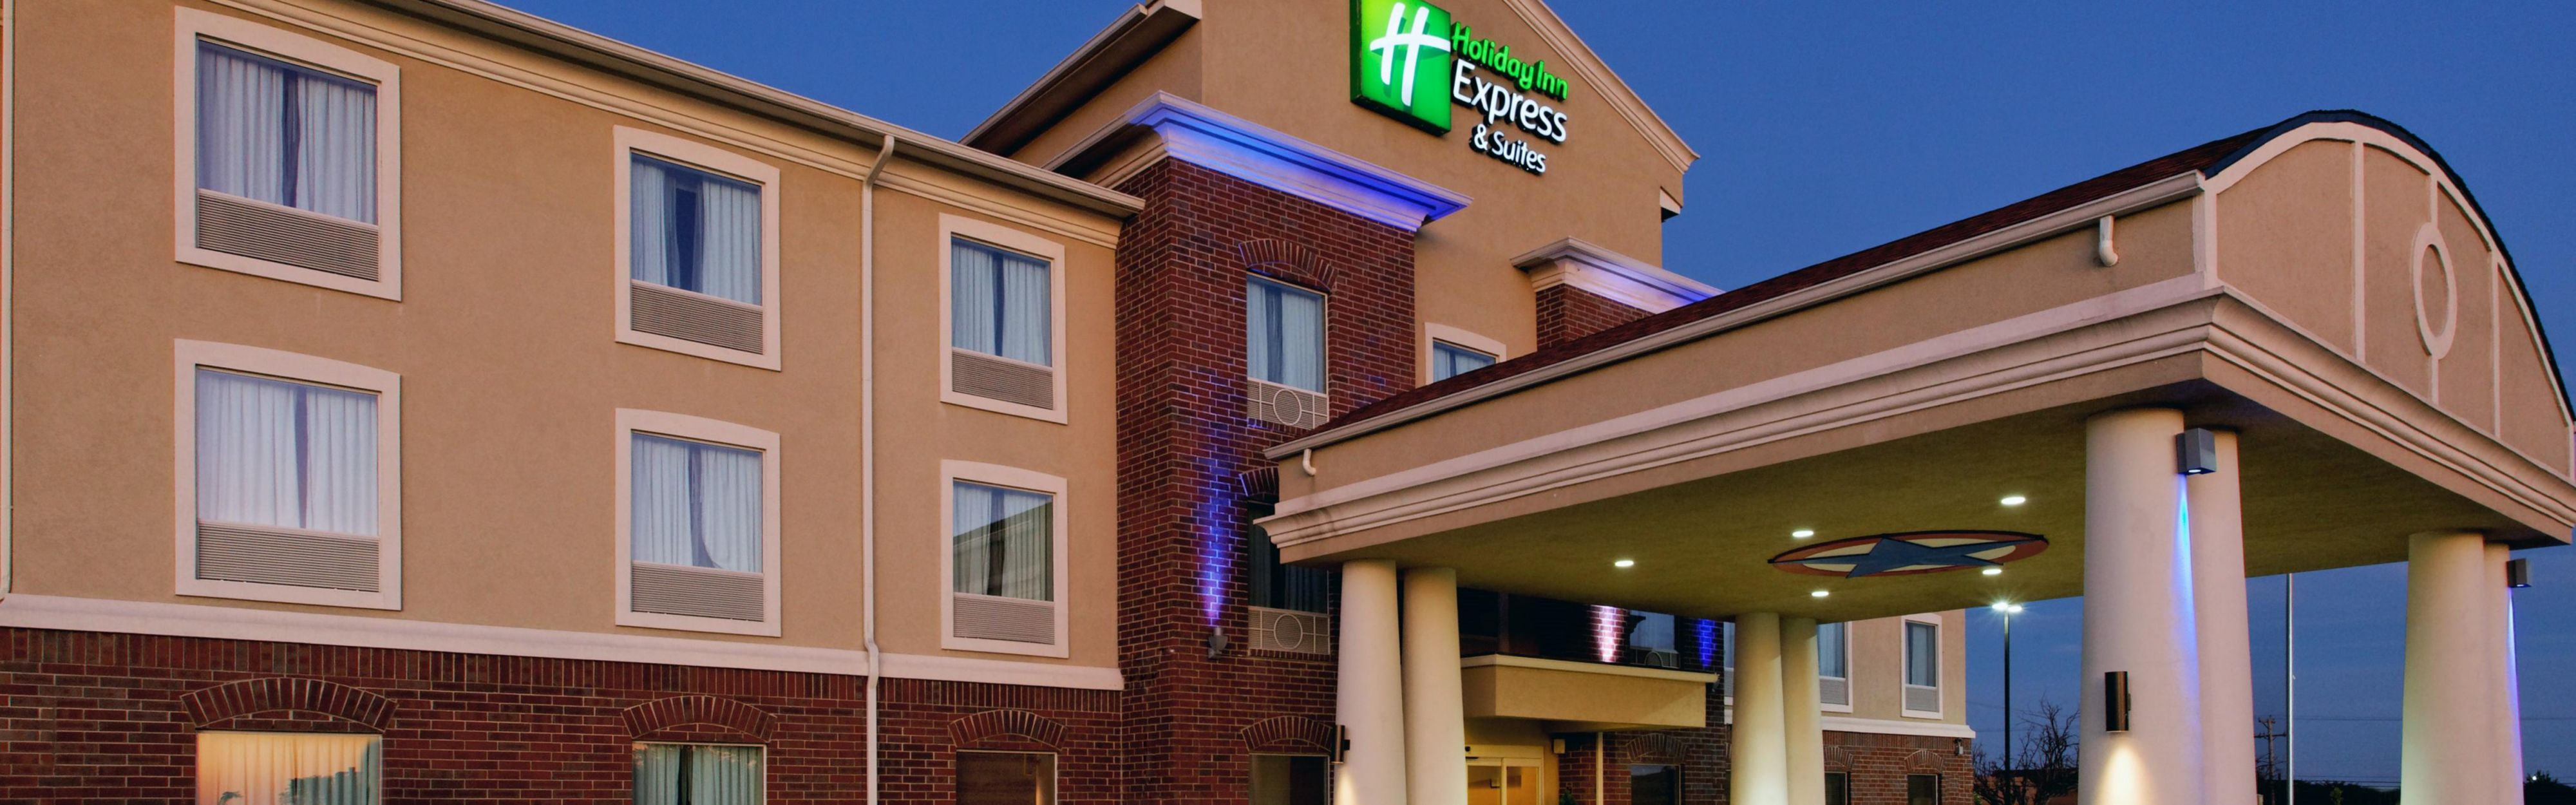 Holiday Inn Express & Suites Cleburne image 0